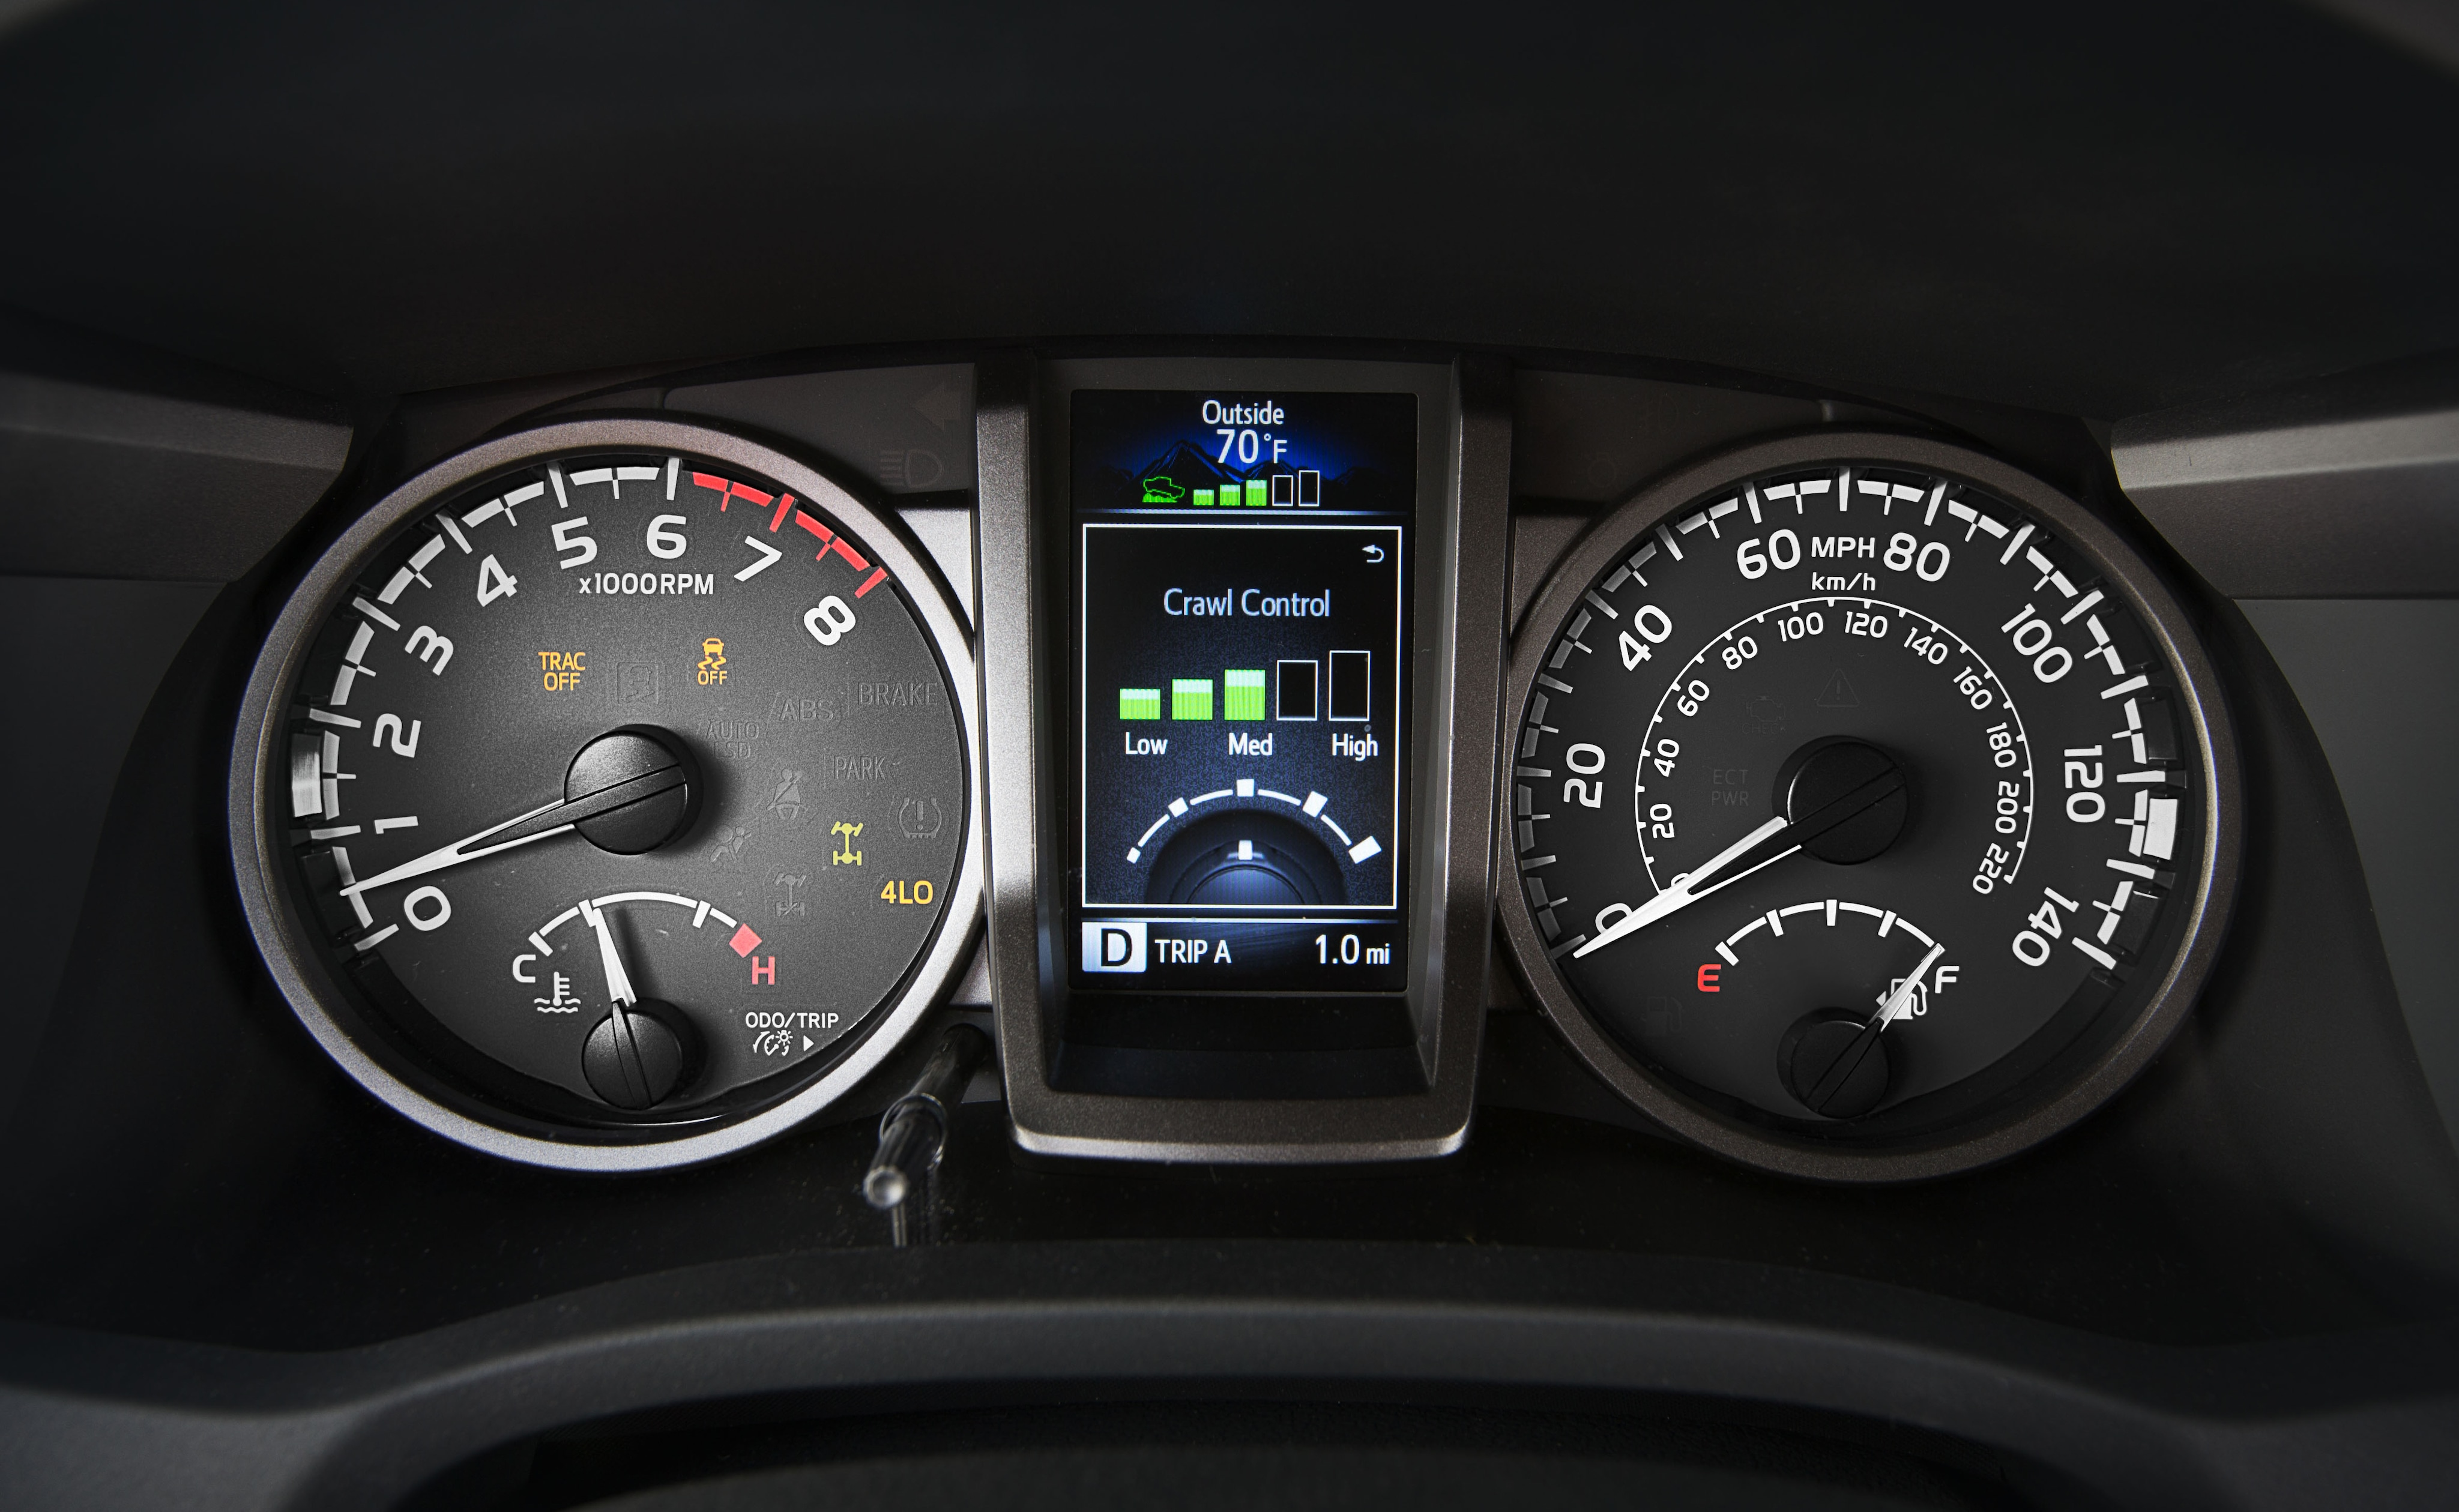 Crawl Control System on the 2018 Tacoma Multi-Informational Display